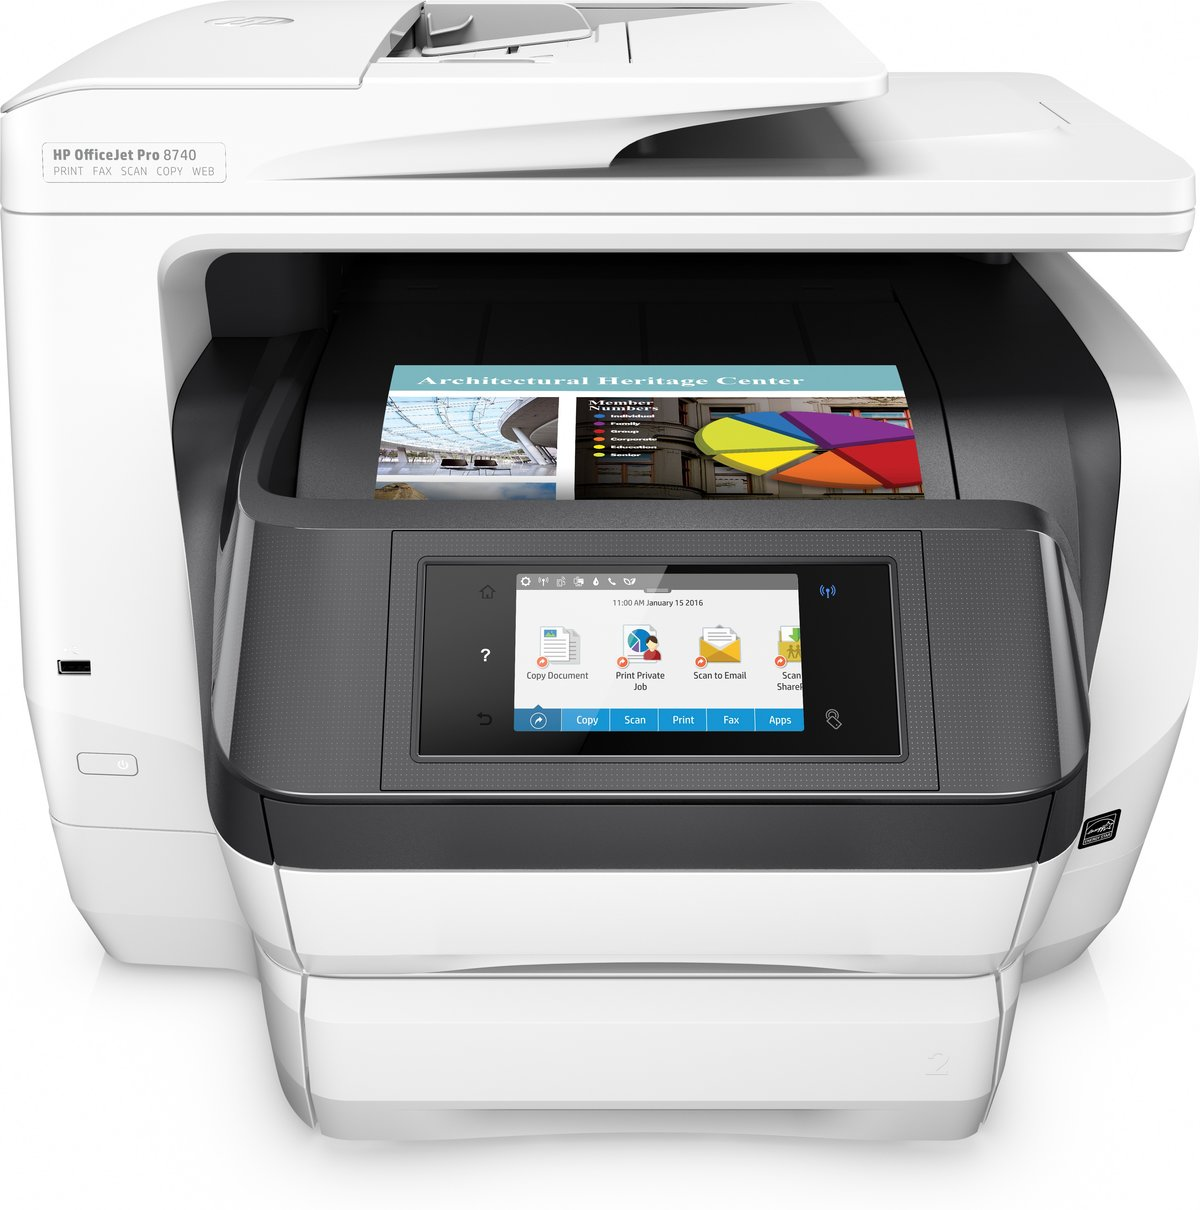 ПЕЧАТЬ ПРИНТЕР Hp Officejet Pro 8740 All In One Wireless Printer With Mobile Printing K7s42a Item 483746